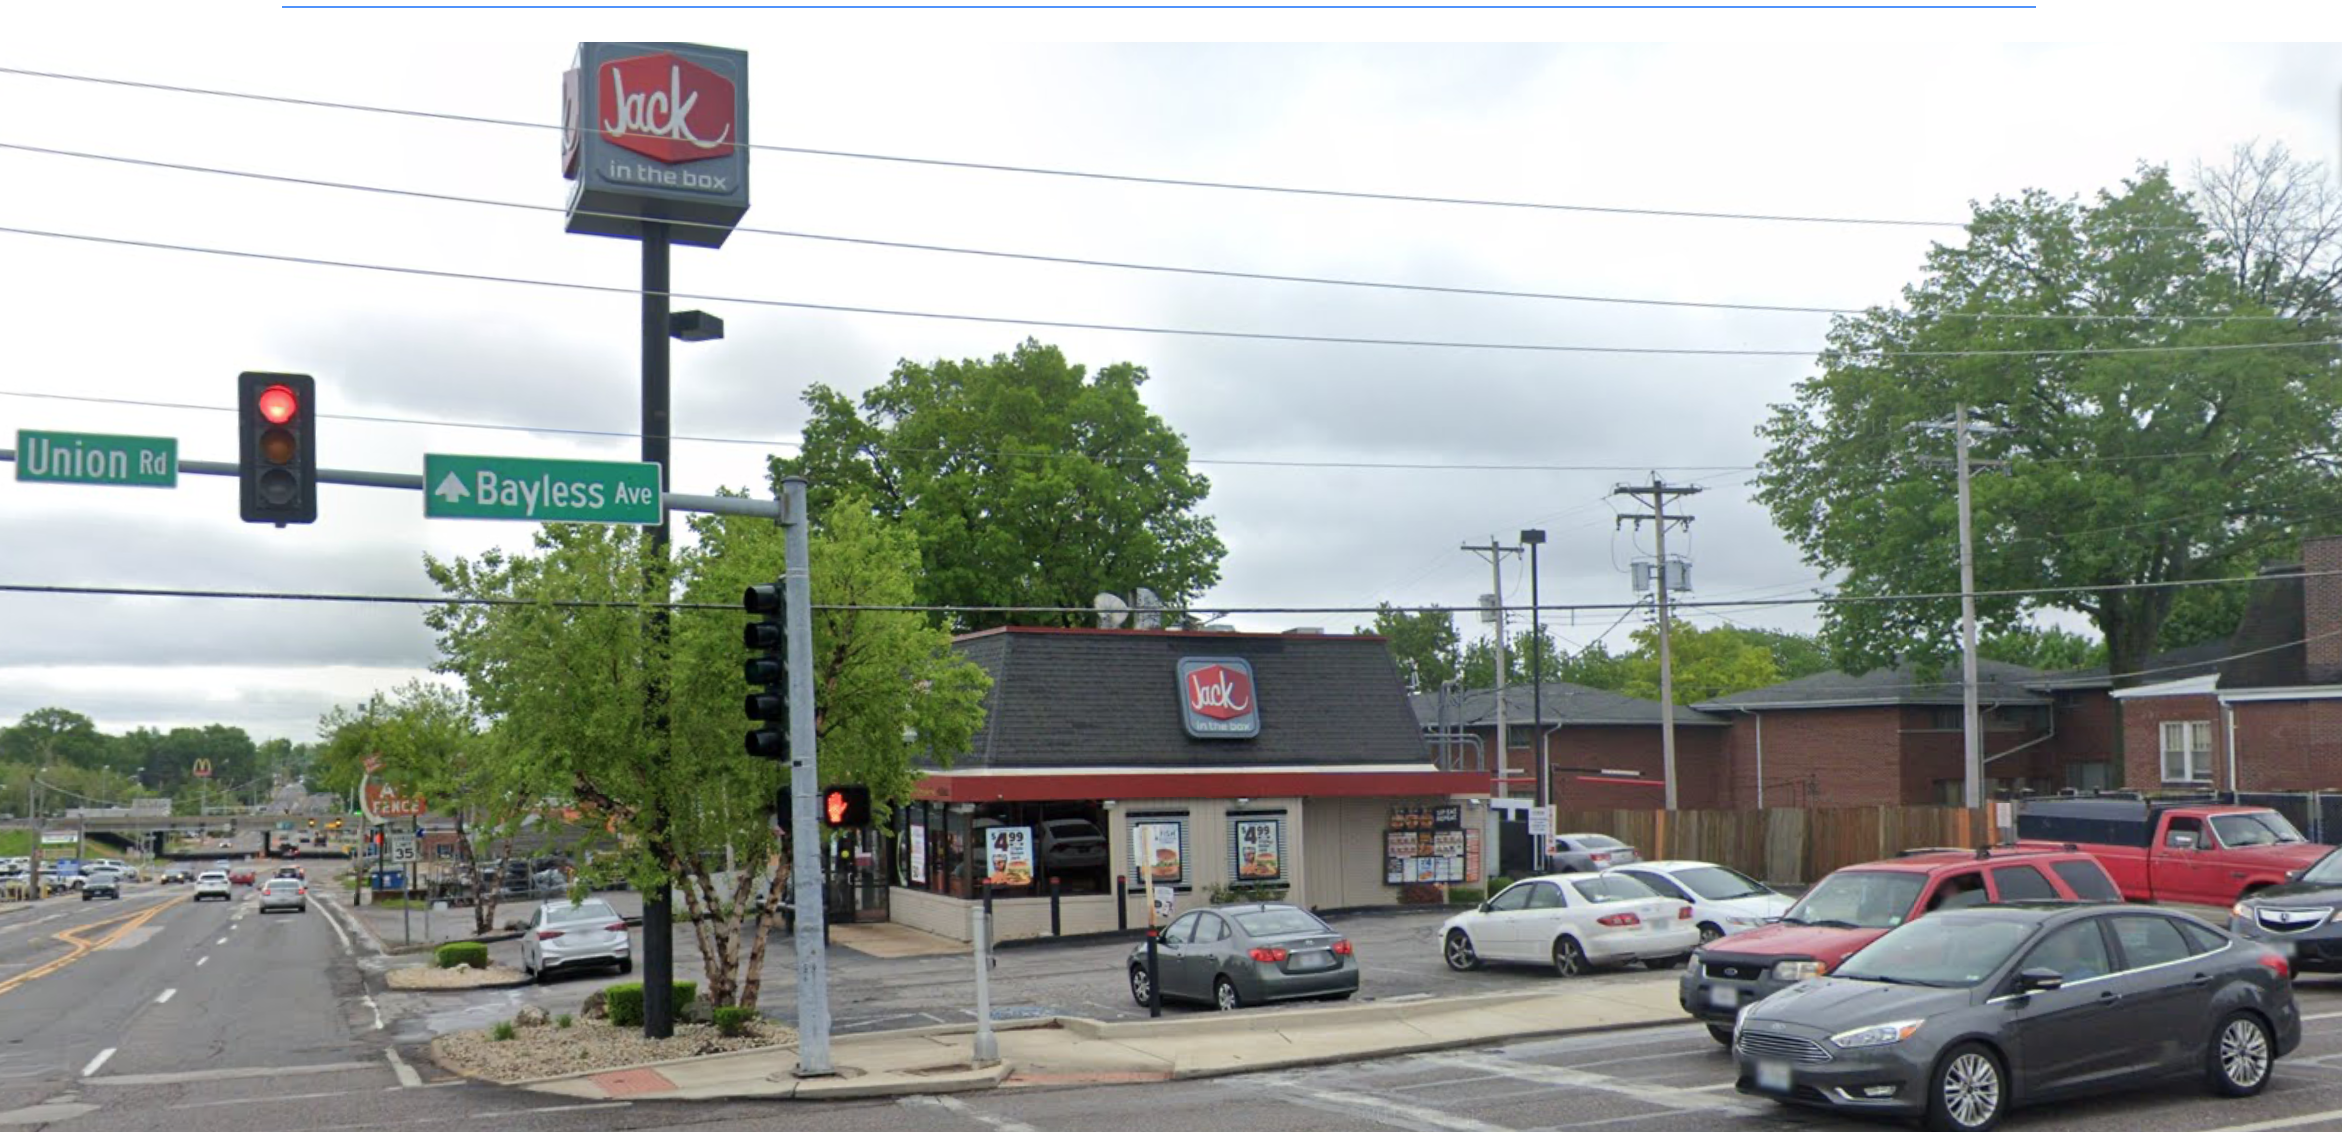 The corner of Union Road and Bayless Avenue at the Jack in the Box restaurant where Michele Frank was last seen alive